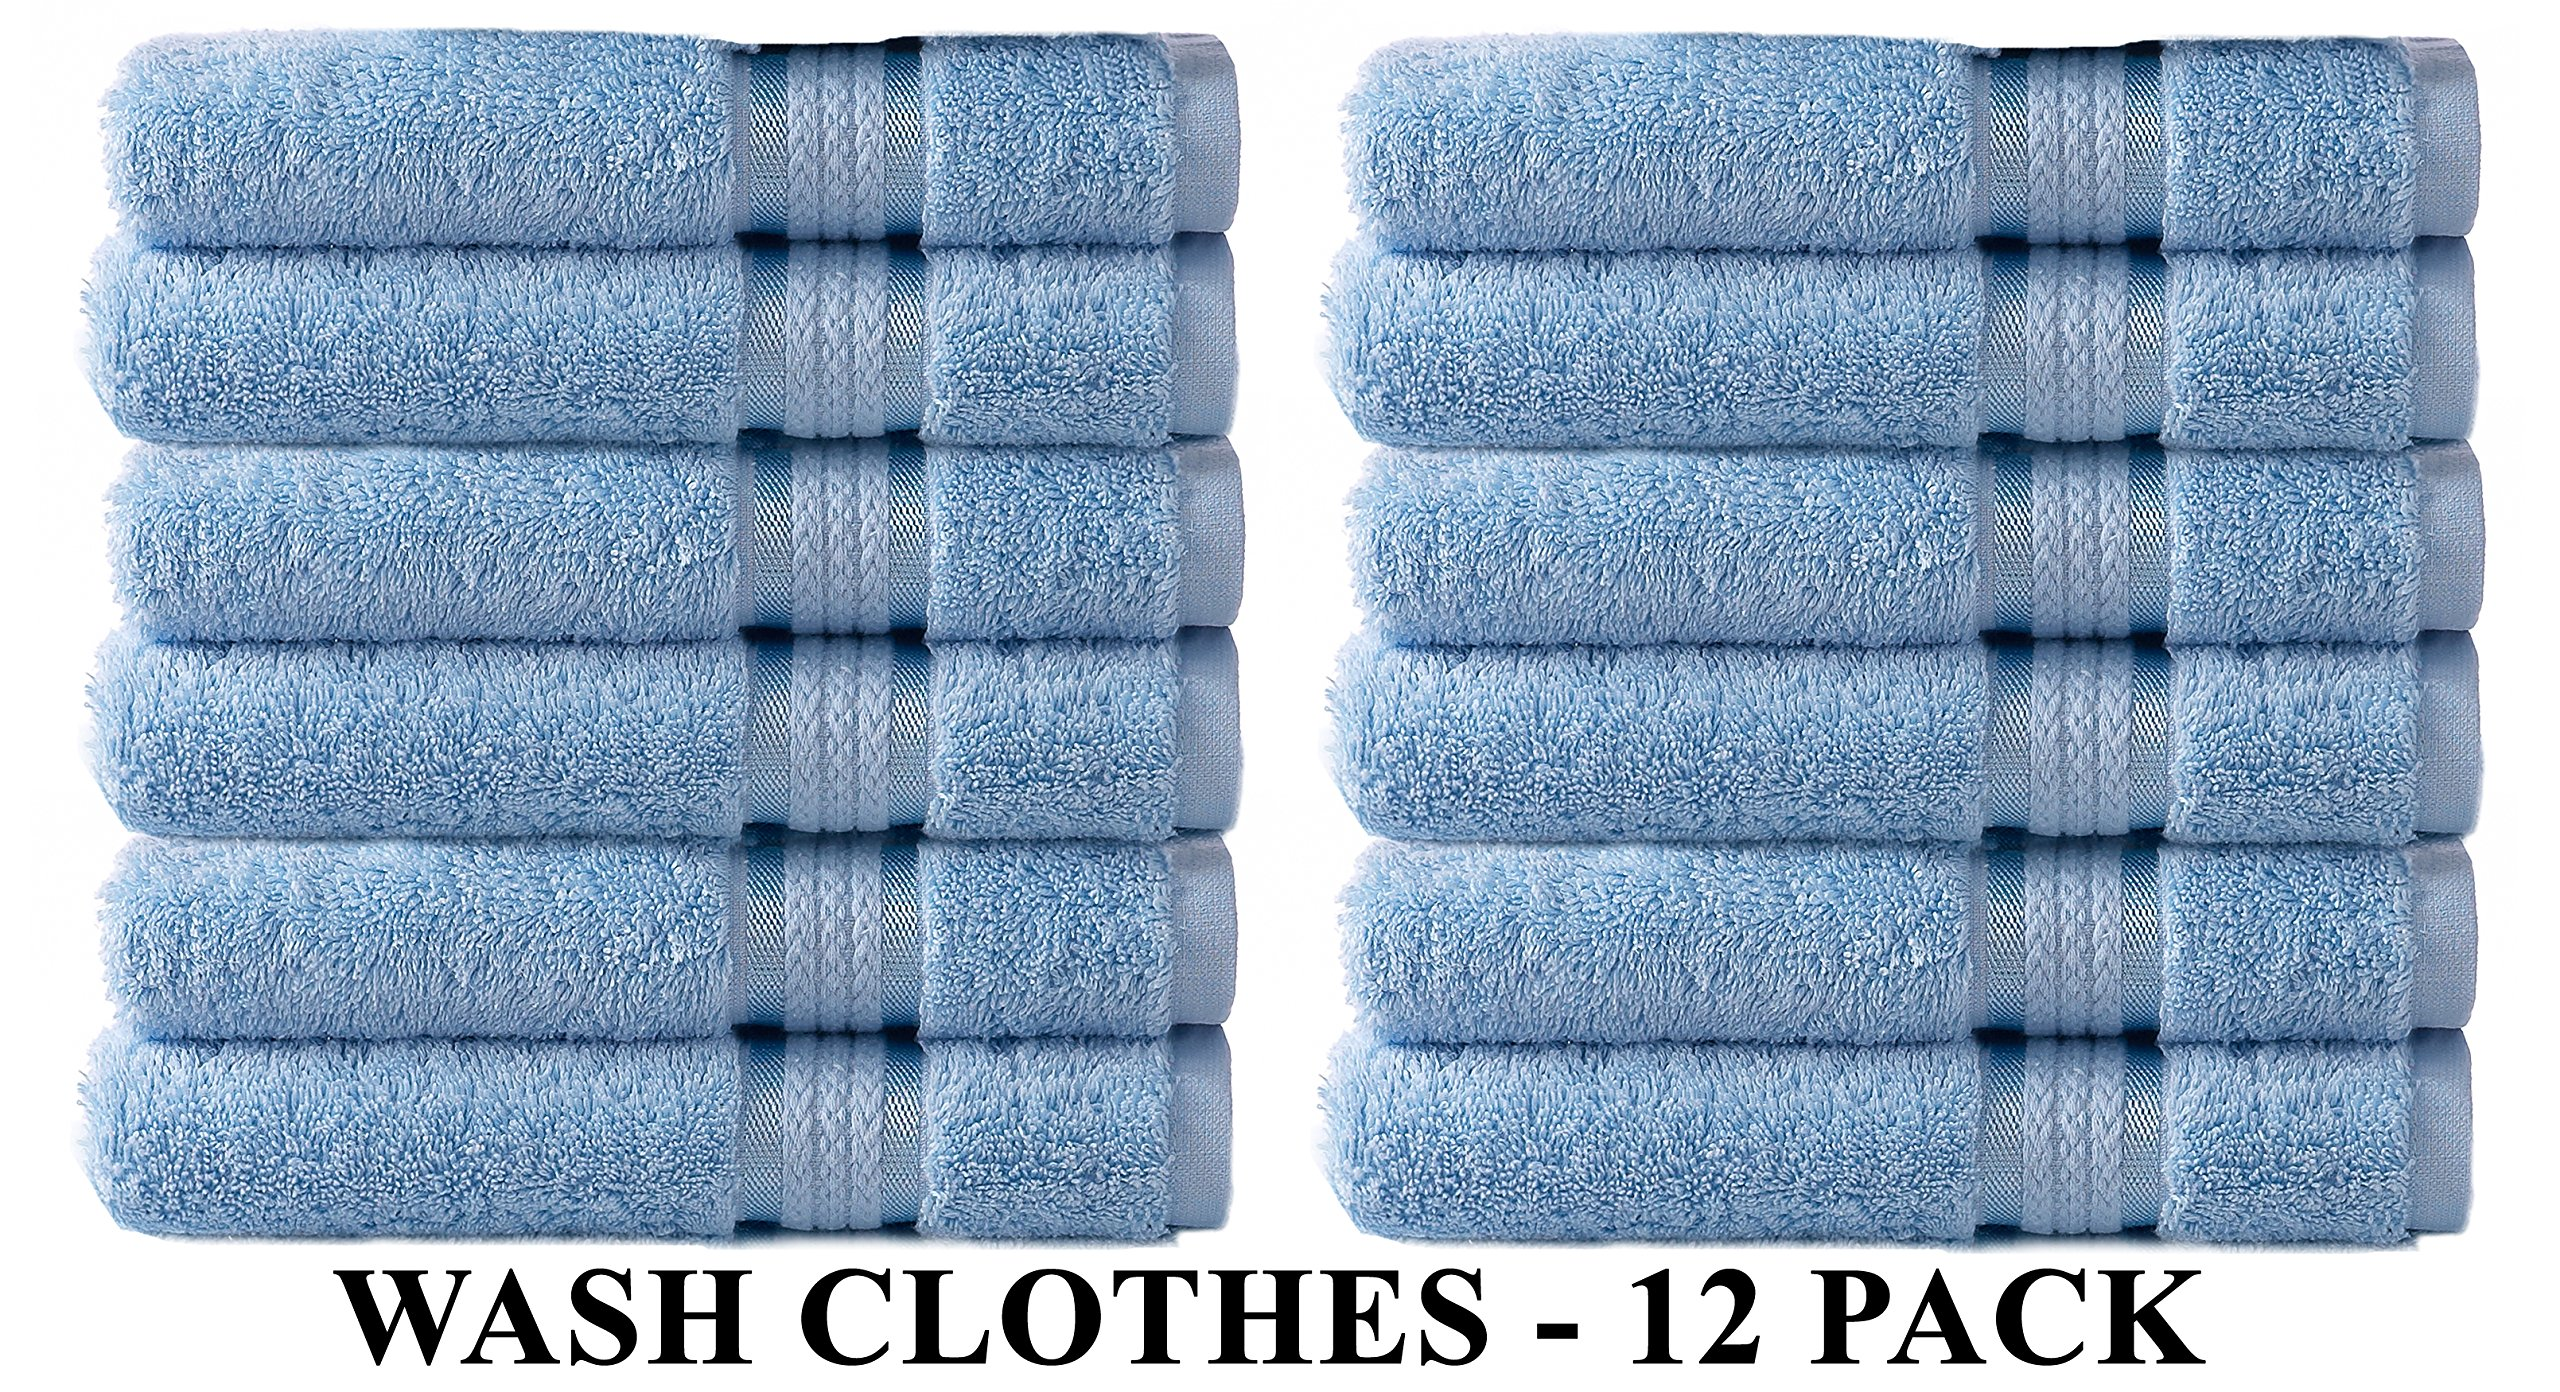 Cotton Craft Ultra Soft 12 Pack Wash Cloths 12x12 Light Blue weighs 2 Ounces each - 100% Pure Ringspun Cotton - Luxurious Rayon trim - Ideal for everyday use - Easy care machine wash